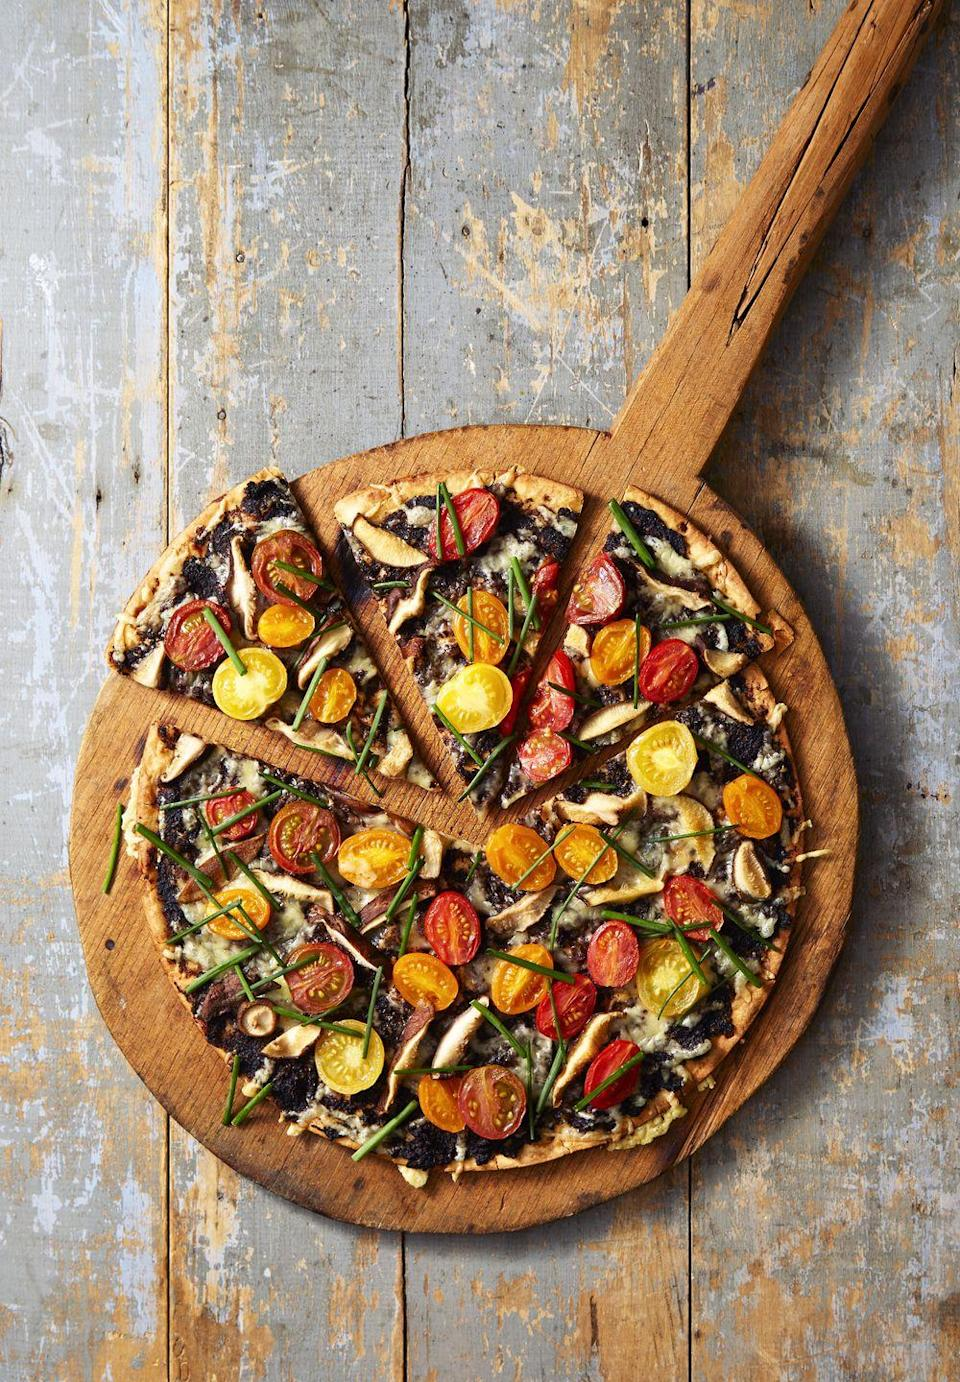 """<p>Load up your pie with veggies and don't even think twice about asking for seconds (or thirds).</p><p><a href=""""https://www.goodhousekeeping.com/food-recipes/a40393/roasted-tomato-chive-pizza-recipe/"""" rel=""""nofollow noopener"""" target=""""_blank"""" data-ylk=""""slk:Get the recipe for Roasted Tomato and Chive Pizza »"""" class=""""link rapid-noclick-resp""""><em><span class=""""redactor-invisible-space""""><span class=""""redactor-invisible-space""""><span class=""""redactor-invisible-space"""">Get the recipe for Roasted Tomato and Chive Pizza »</span></span></span></em></a><br></p>"""